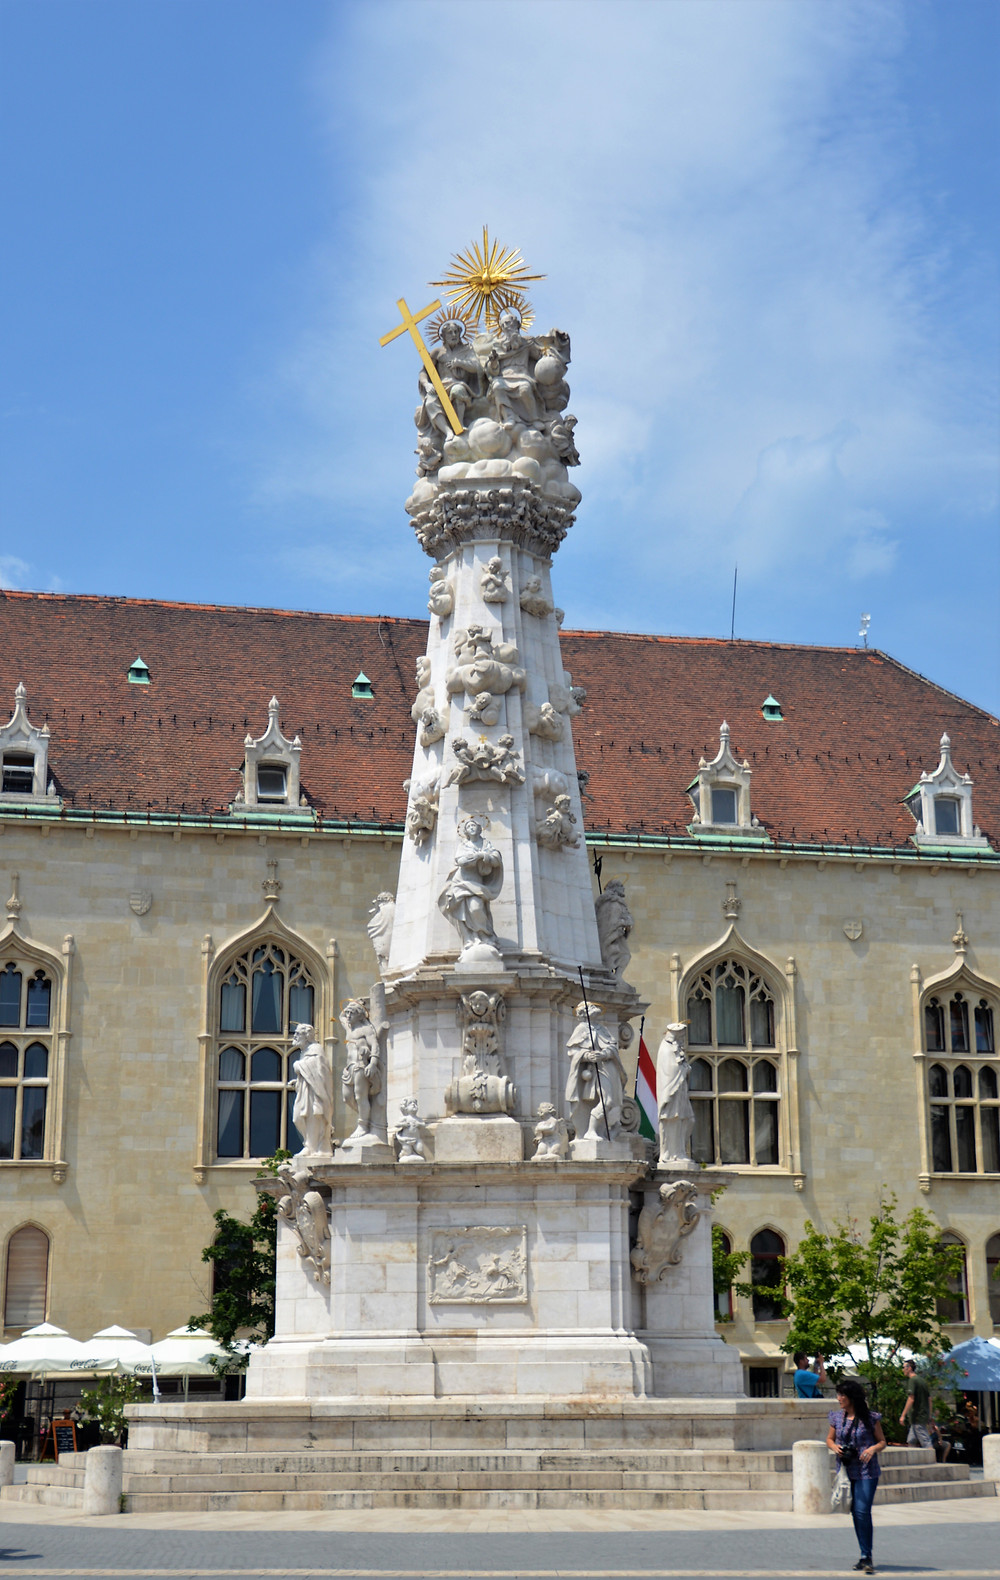 The Holy Trinity column finished in 1709 commemorates the people of Buda who died from two outbreaks of the Black Plague.